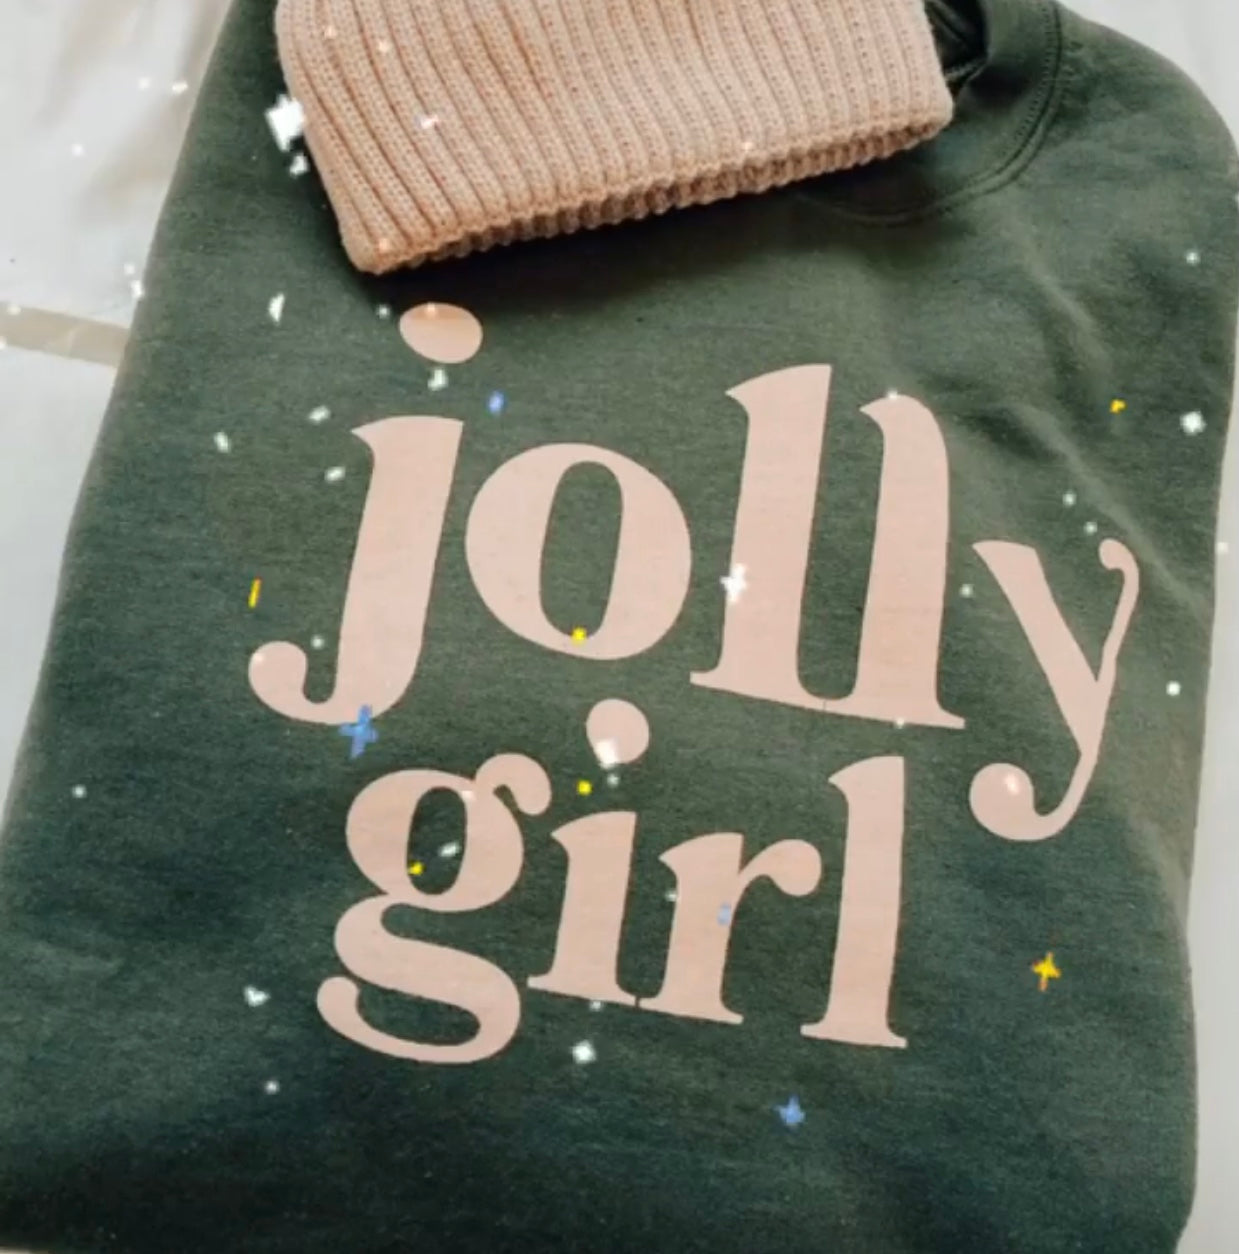 Jolly Girl Graphic Sweatshirt